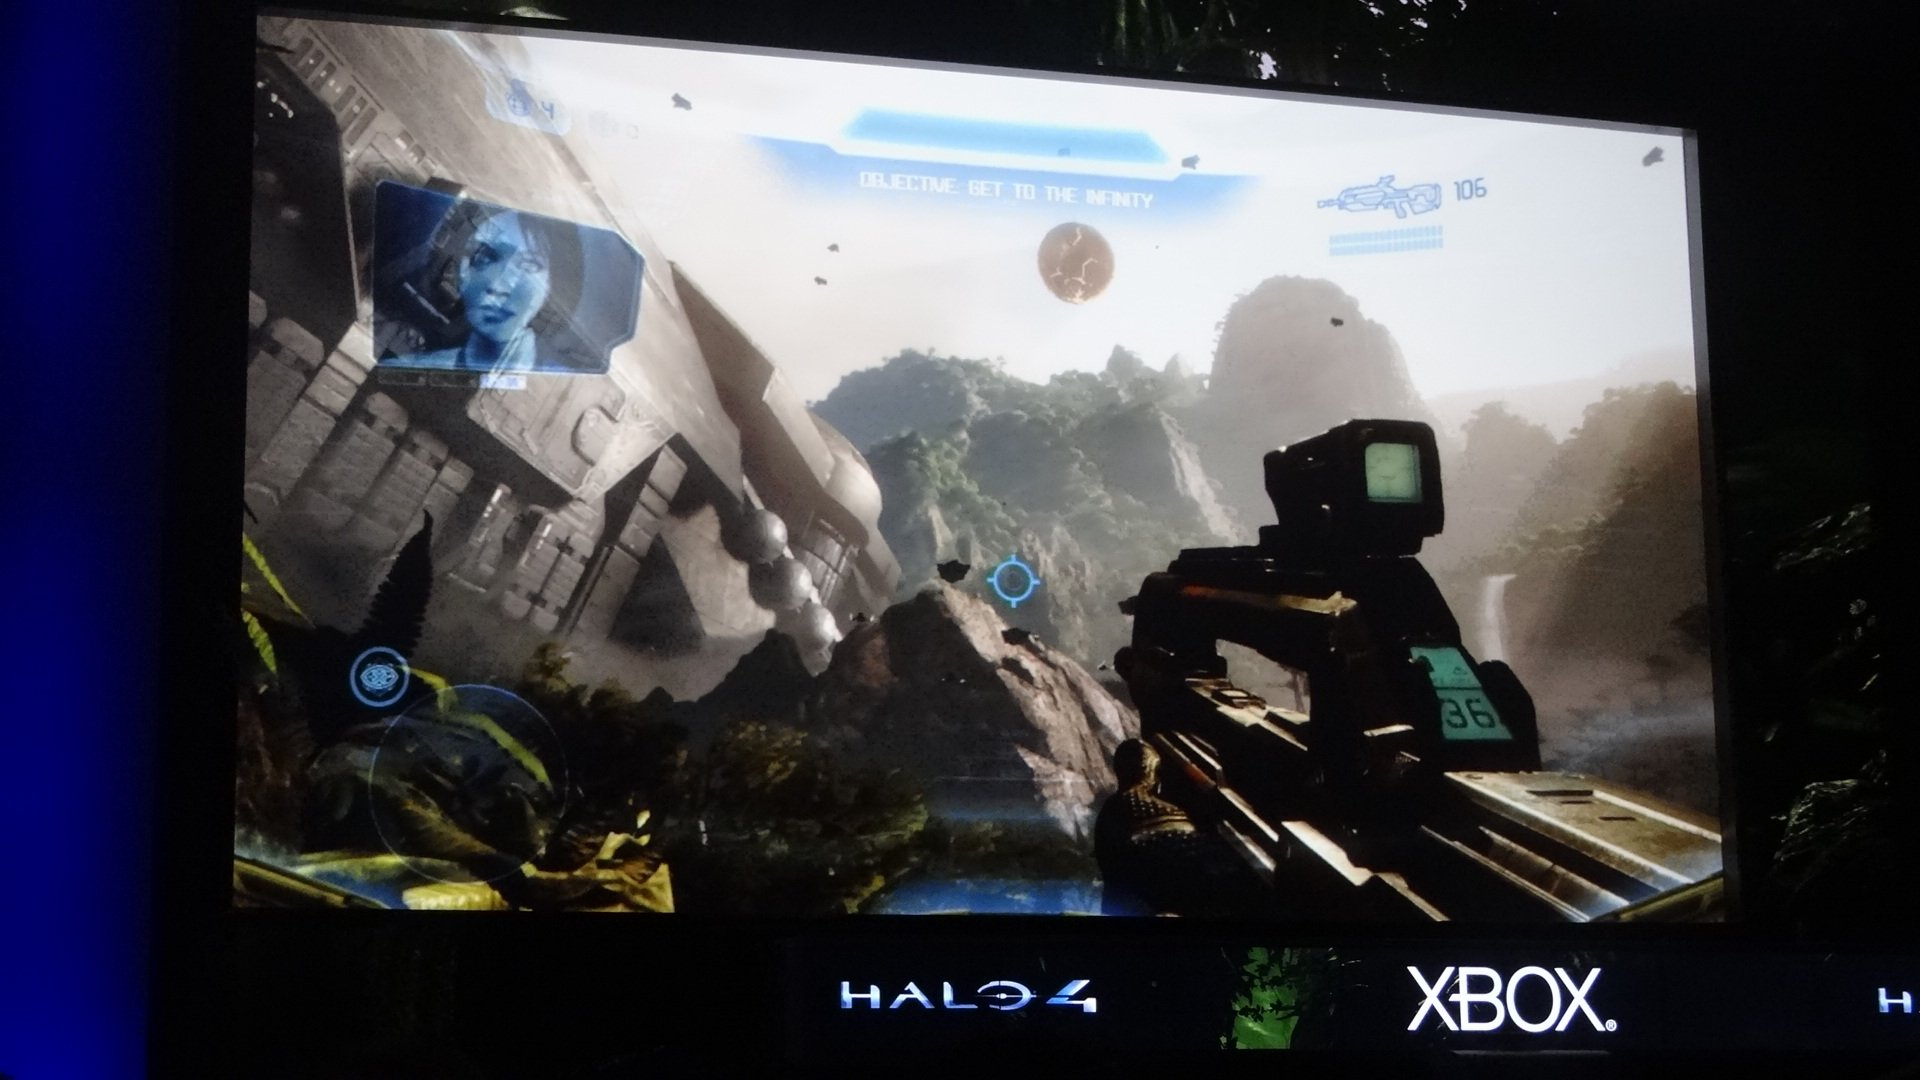 Halo 4 unveiled at Microsoft E3 Press Conference